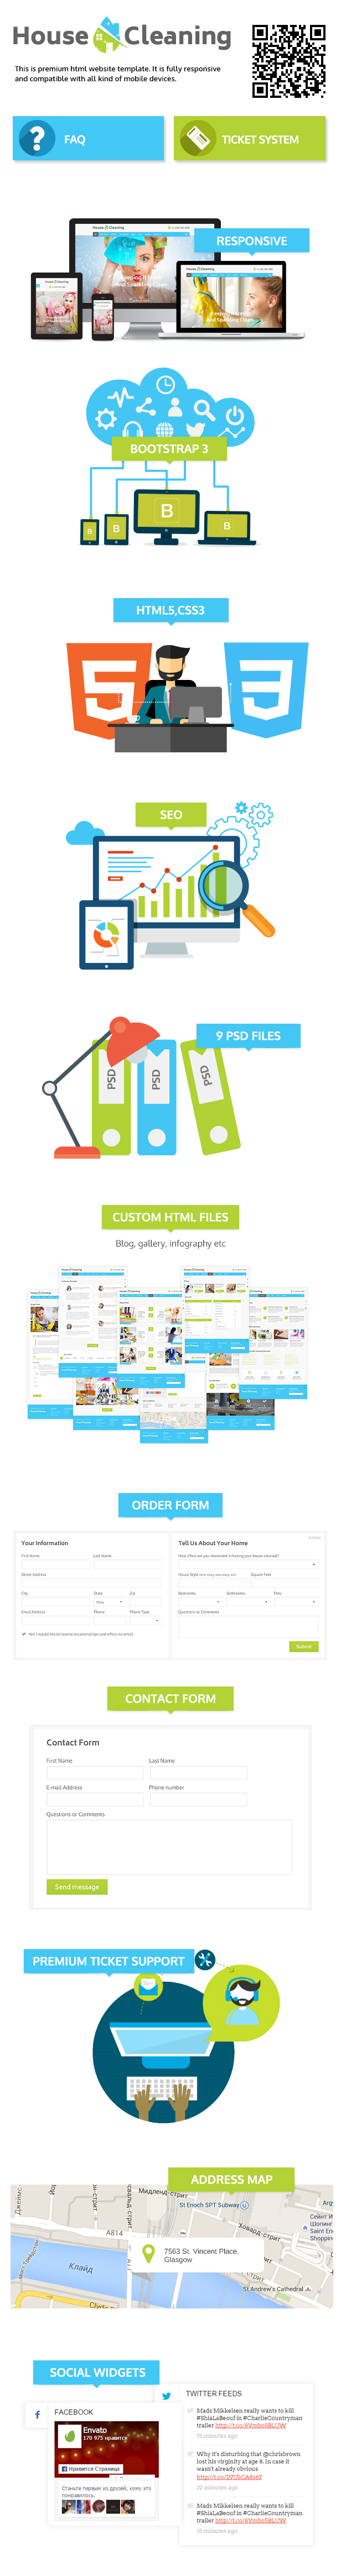 Presentation for House Cleaning html5 template